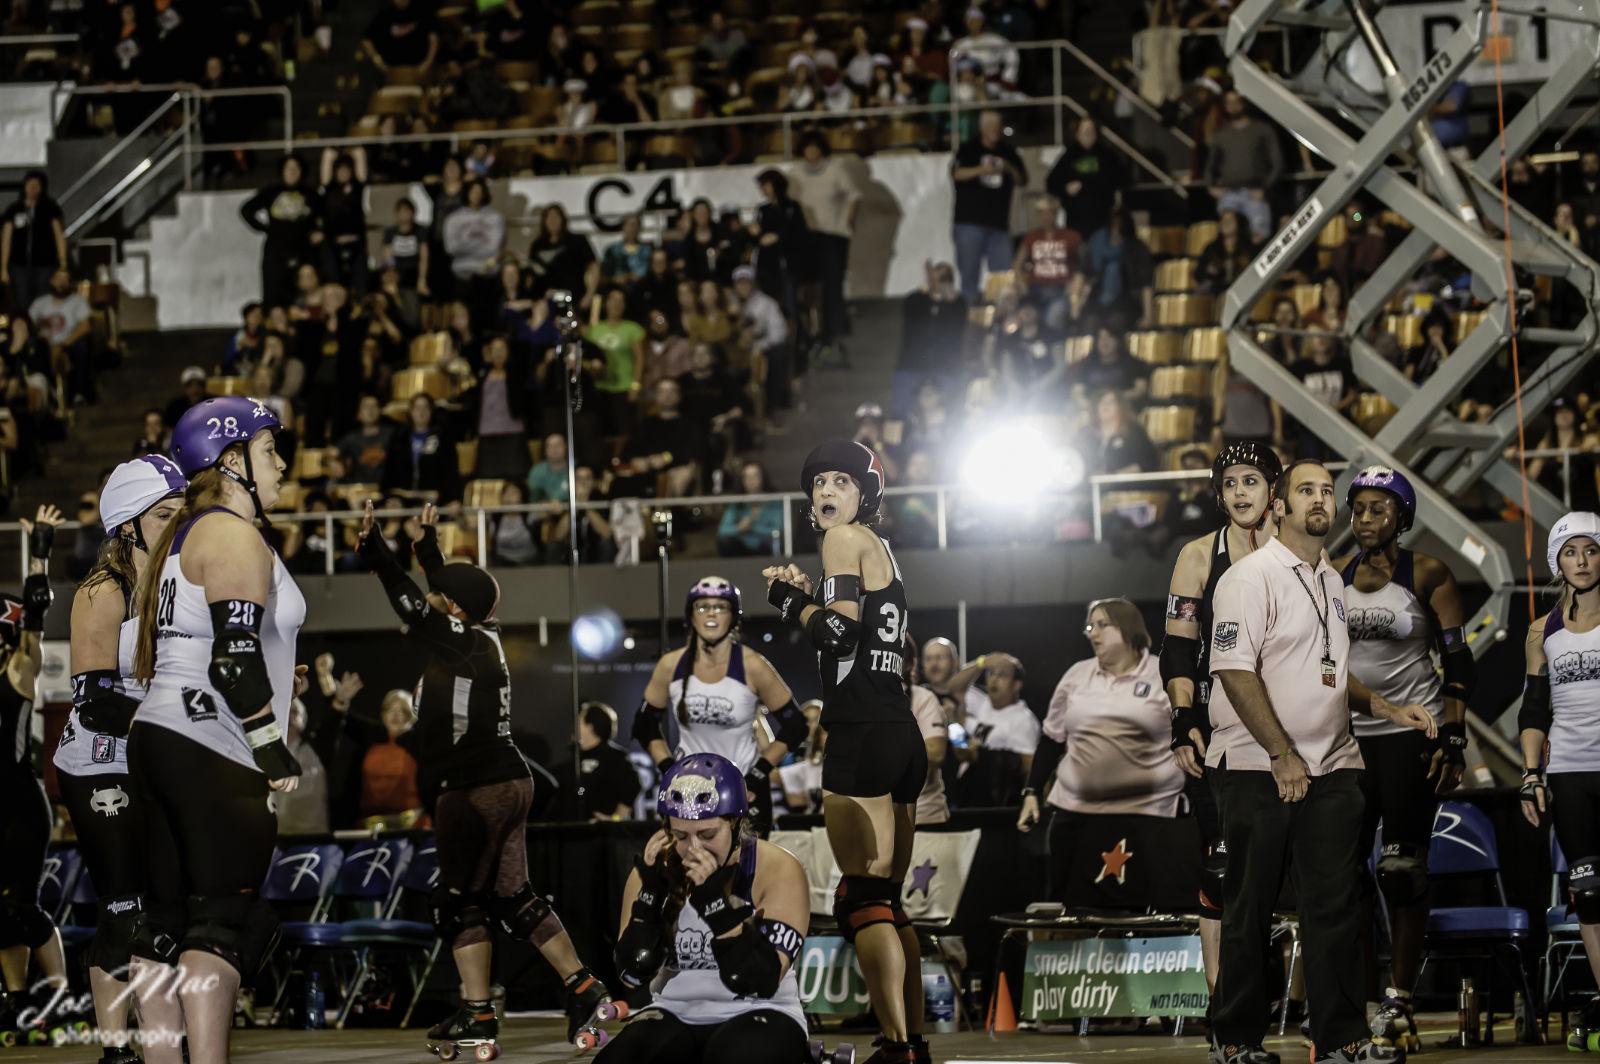 All the emotions the moment the clock stopped, D1 Champs 2014, Rose City Rollers (Charleston #1) 144 vs. Gotham Girls Roller Derby (Sacramento #1) 147 ©Joe Mac